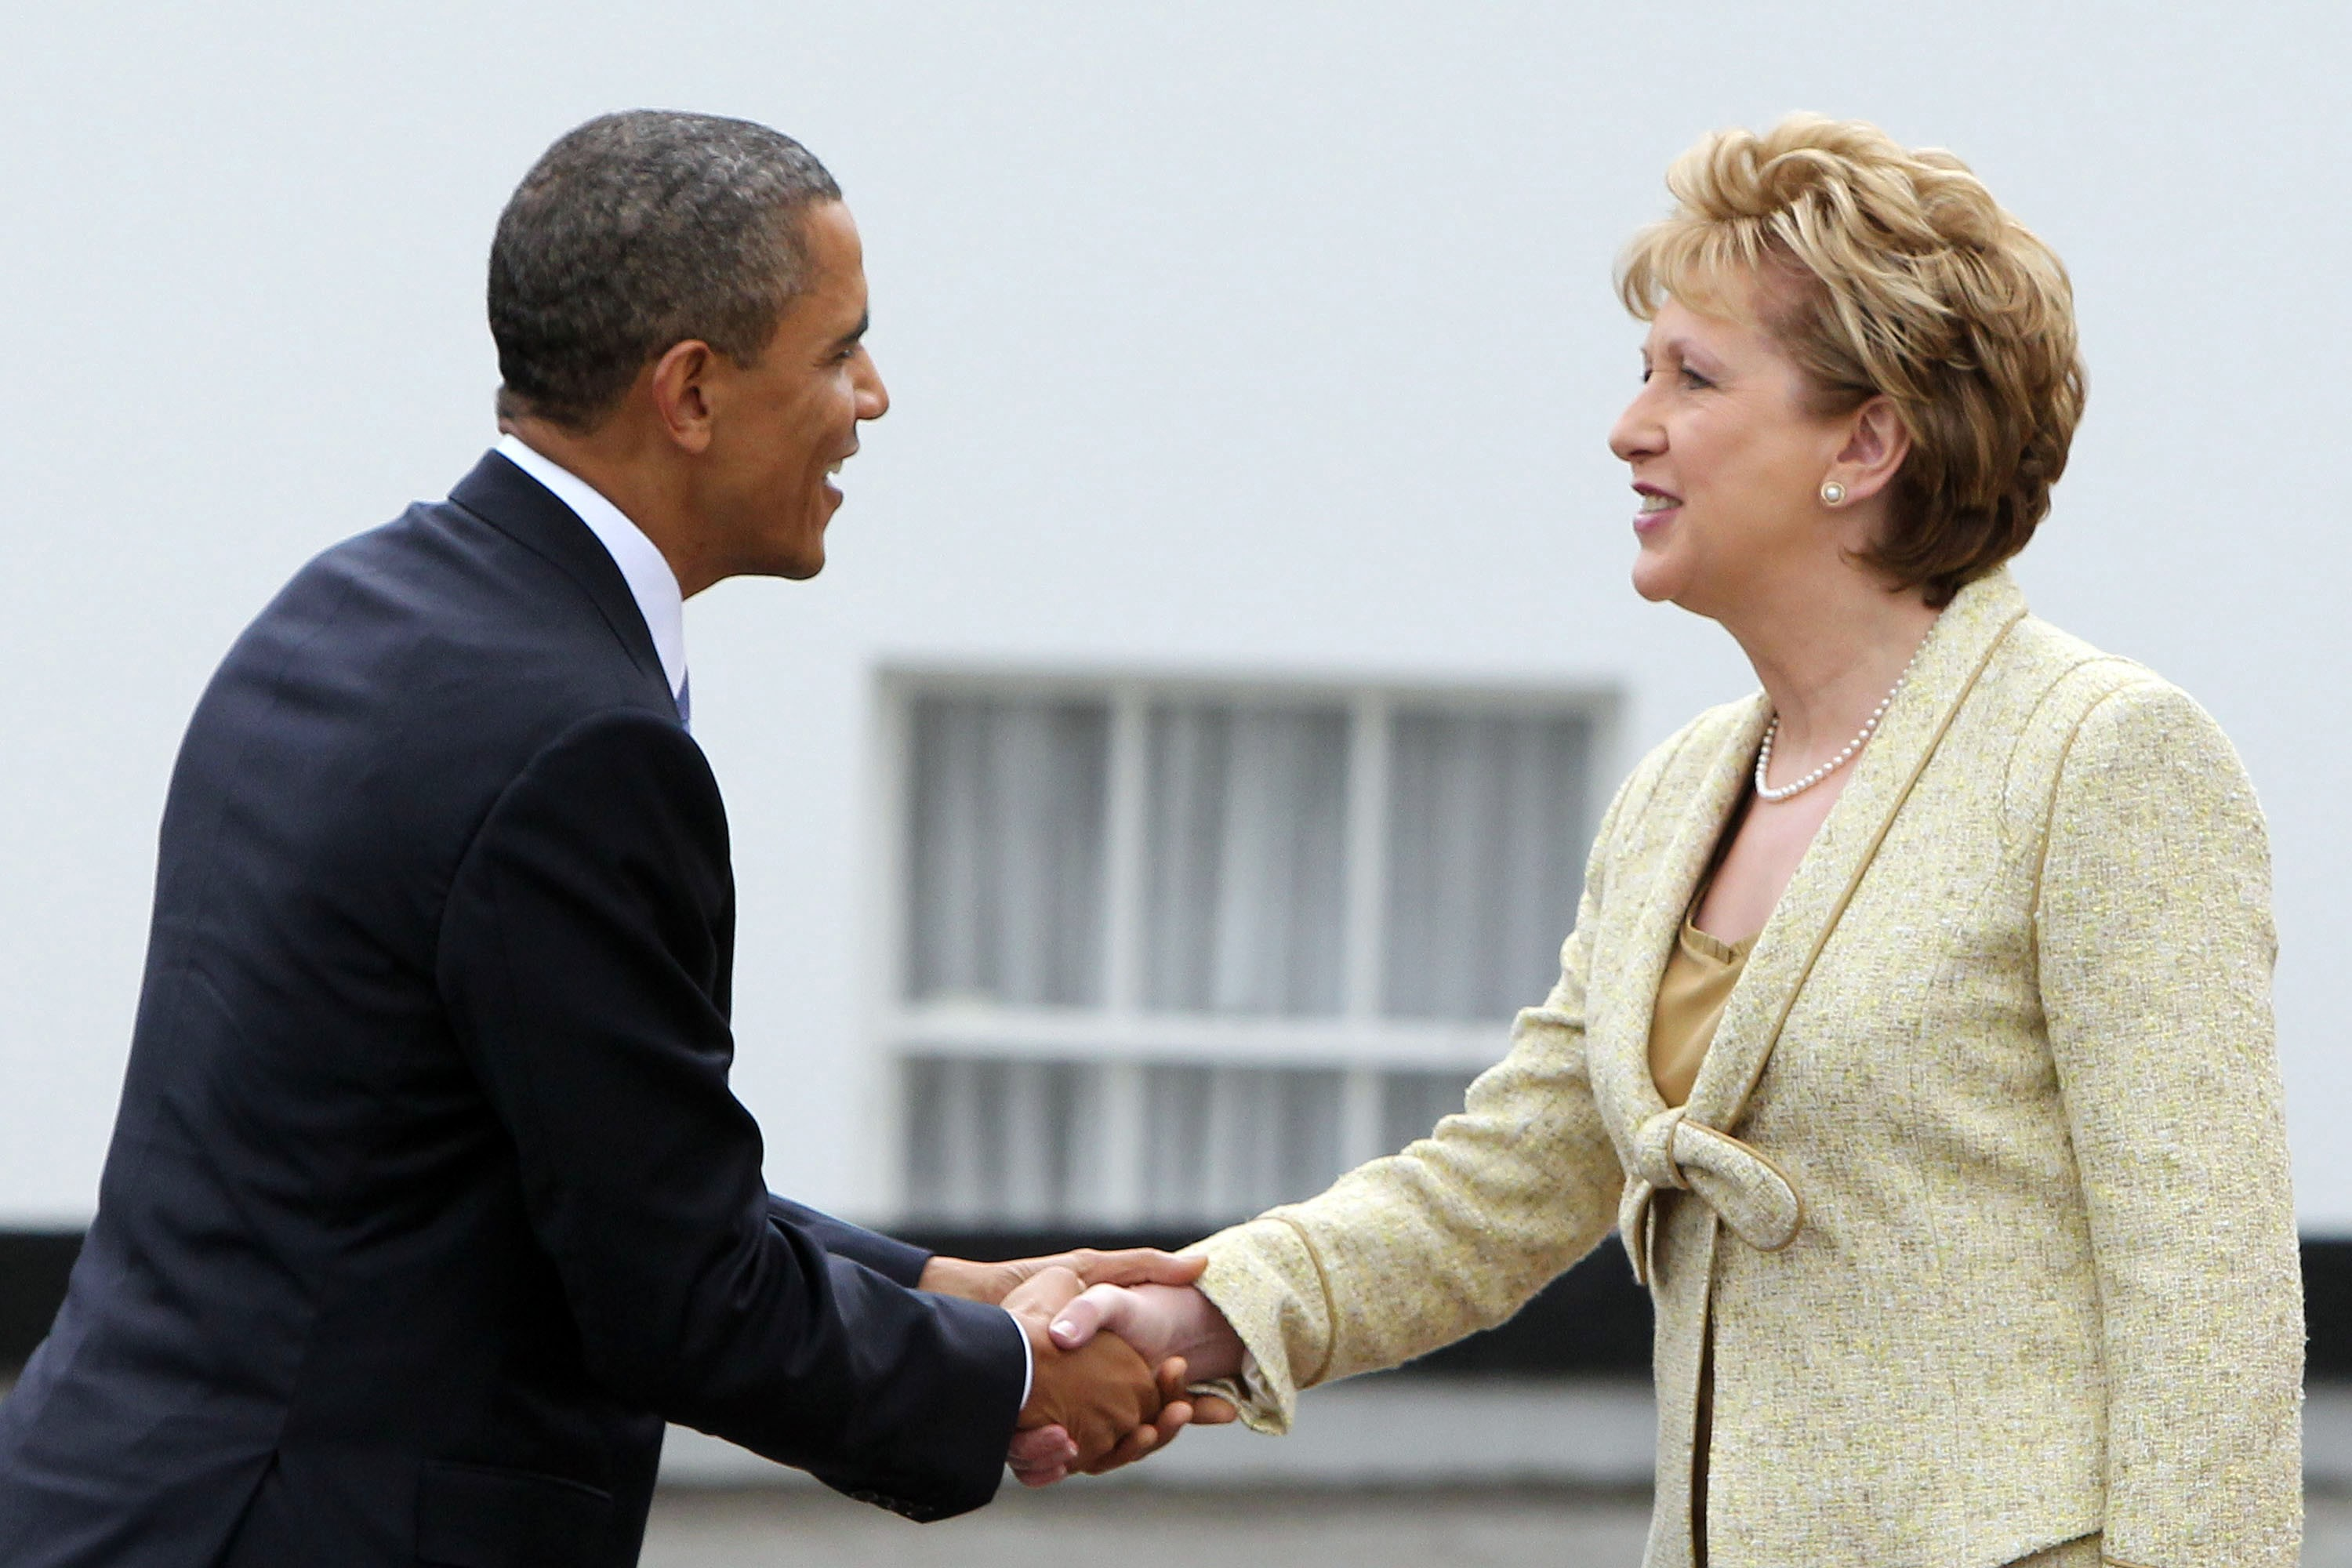 DUBLIN, IRELAND - MAY 23: U.S. President Barack Obama and Irish President Mary McAleese shake hands at Aras an Uachtarain, the official residence of the President of Ireland, May 23, 2011 in Dublin, Ireland.  Obama is visiting Ireland for one day. He will meet with distant relatives in Moneygall and speak at a rally in central Dublin after a concert.  (Photo by Irish Government - Pool /Getty Images)